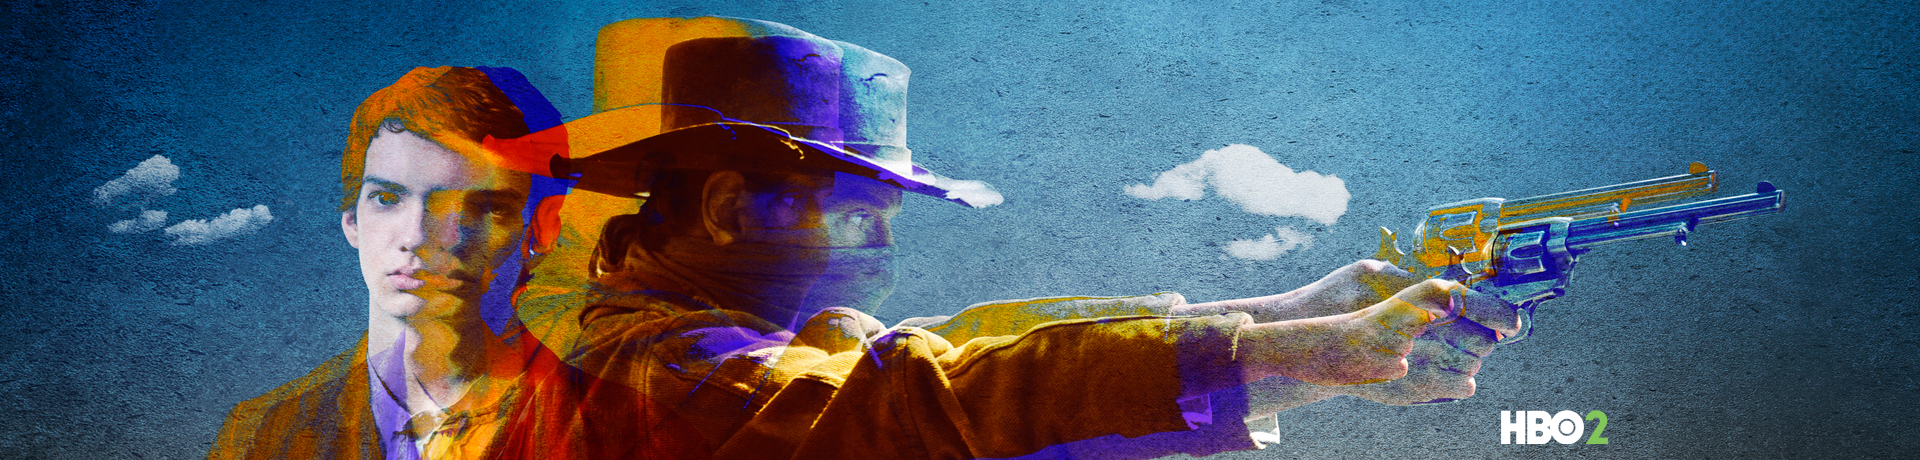 banner-slow-west-